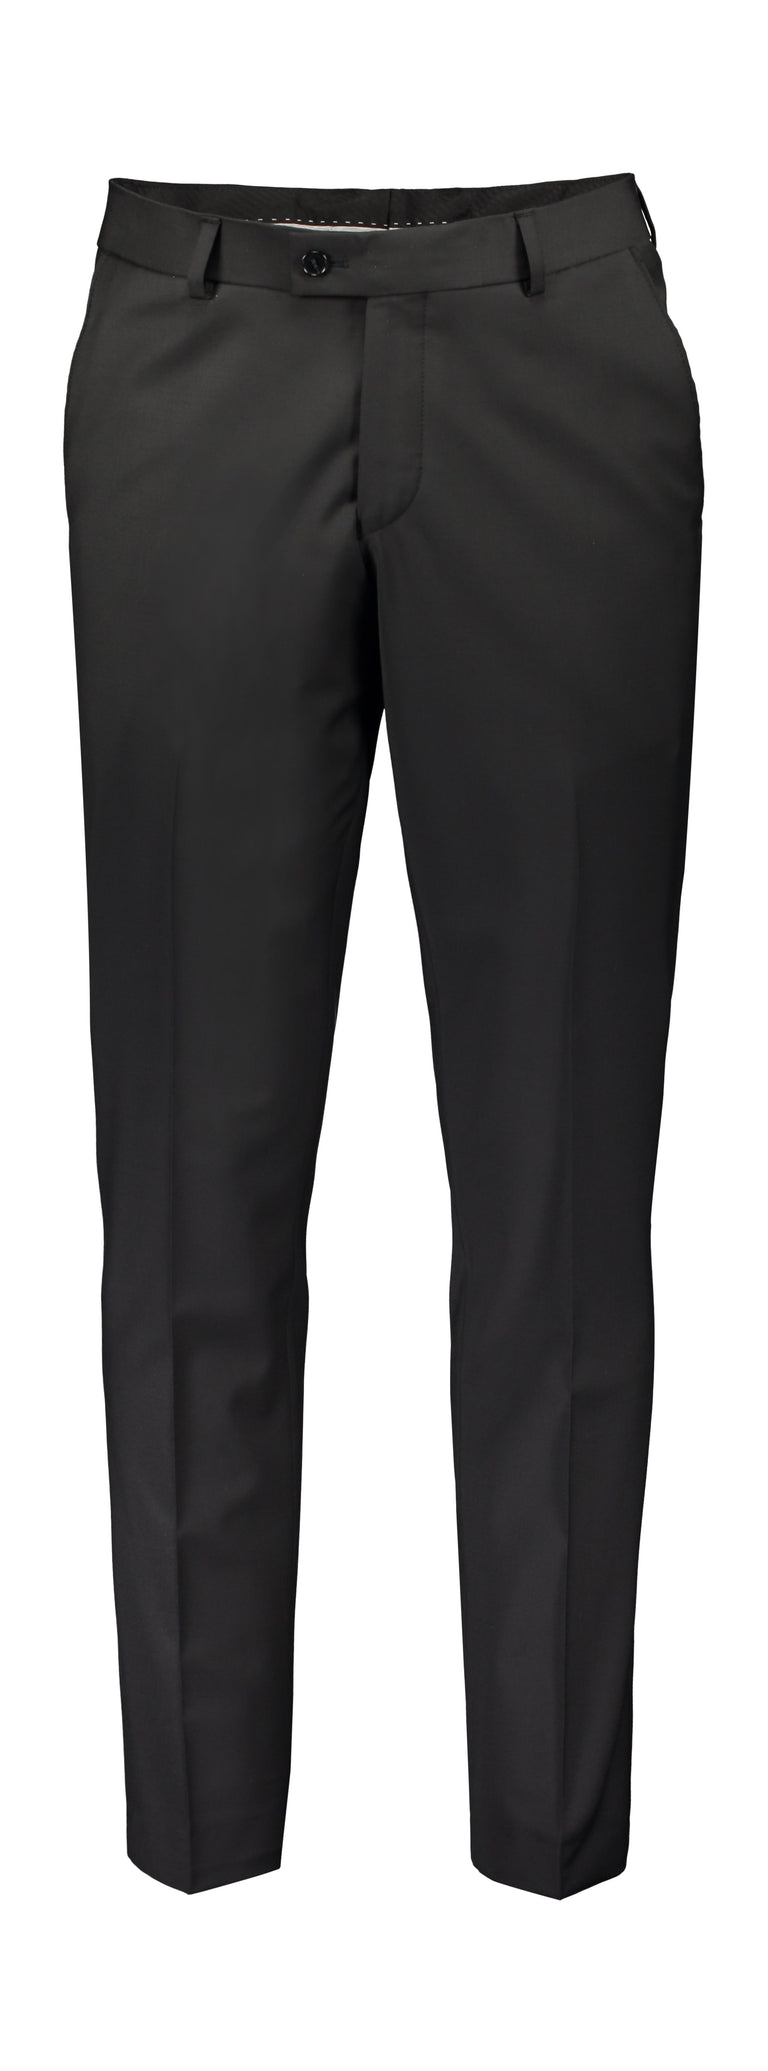 Athlete fit trousers black